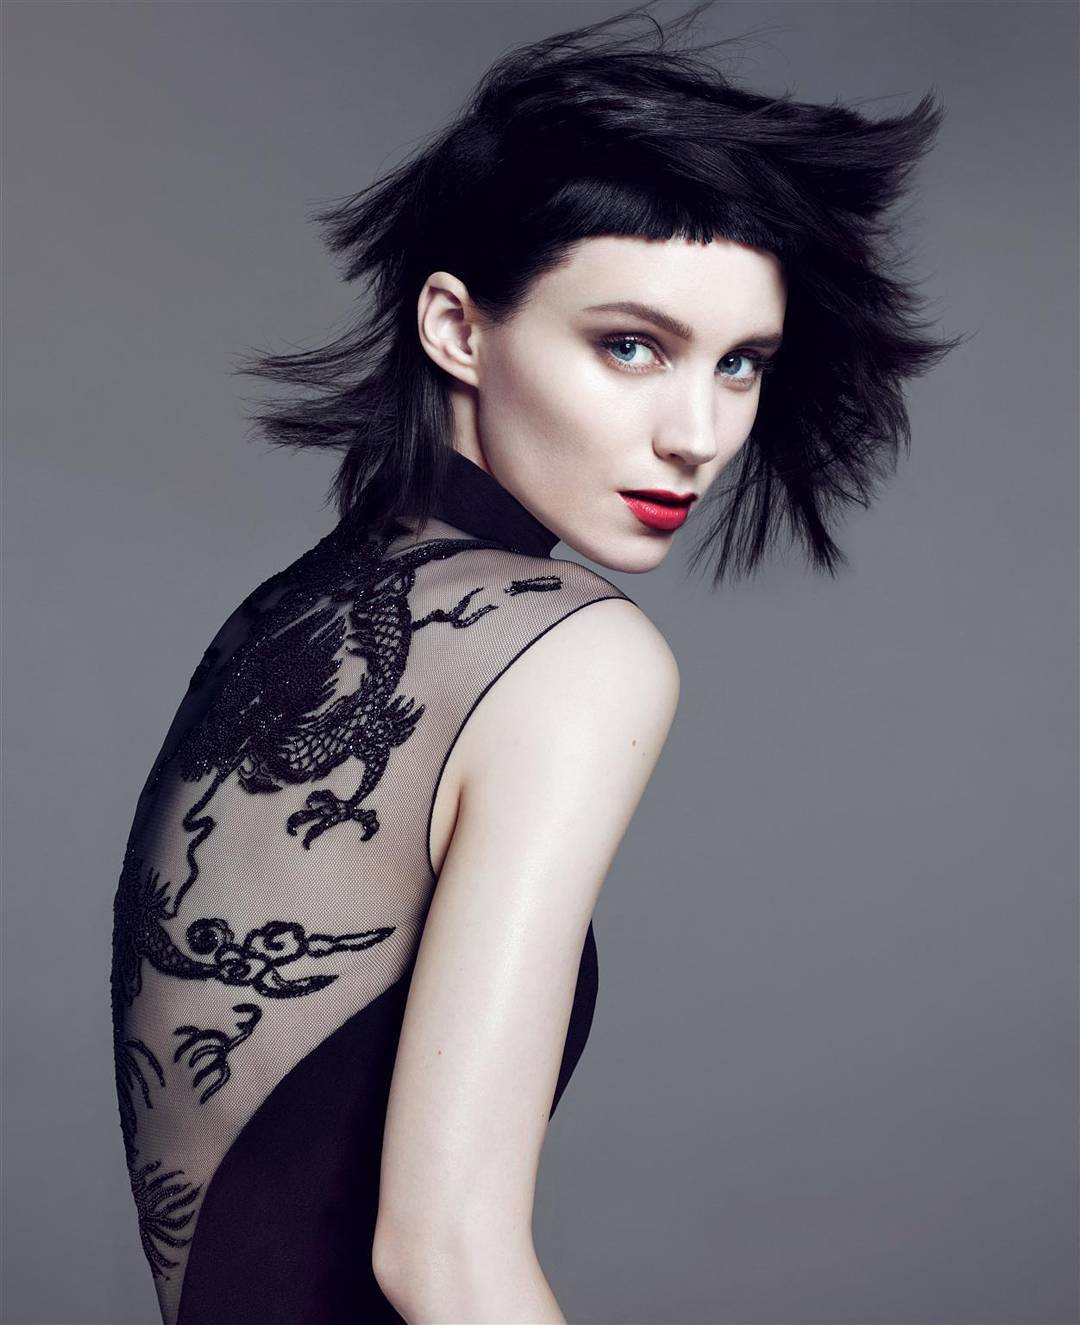 Rooney Mara hot and sexy pic